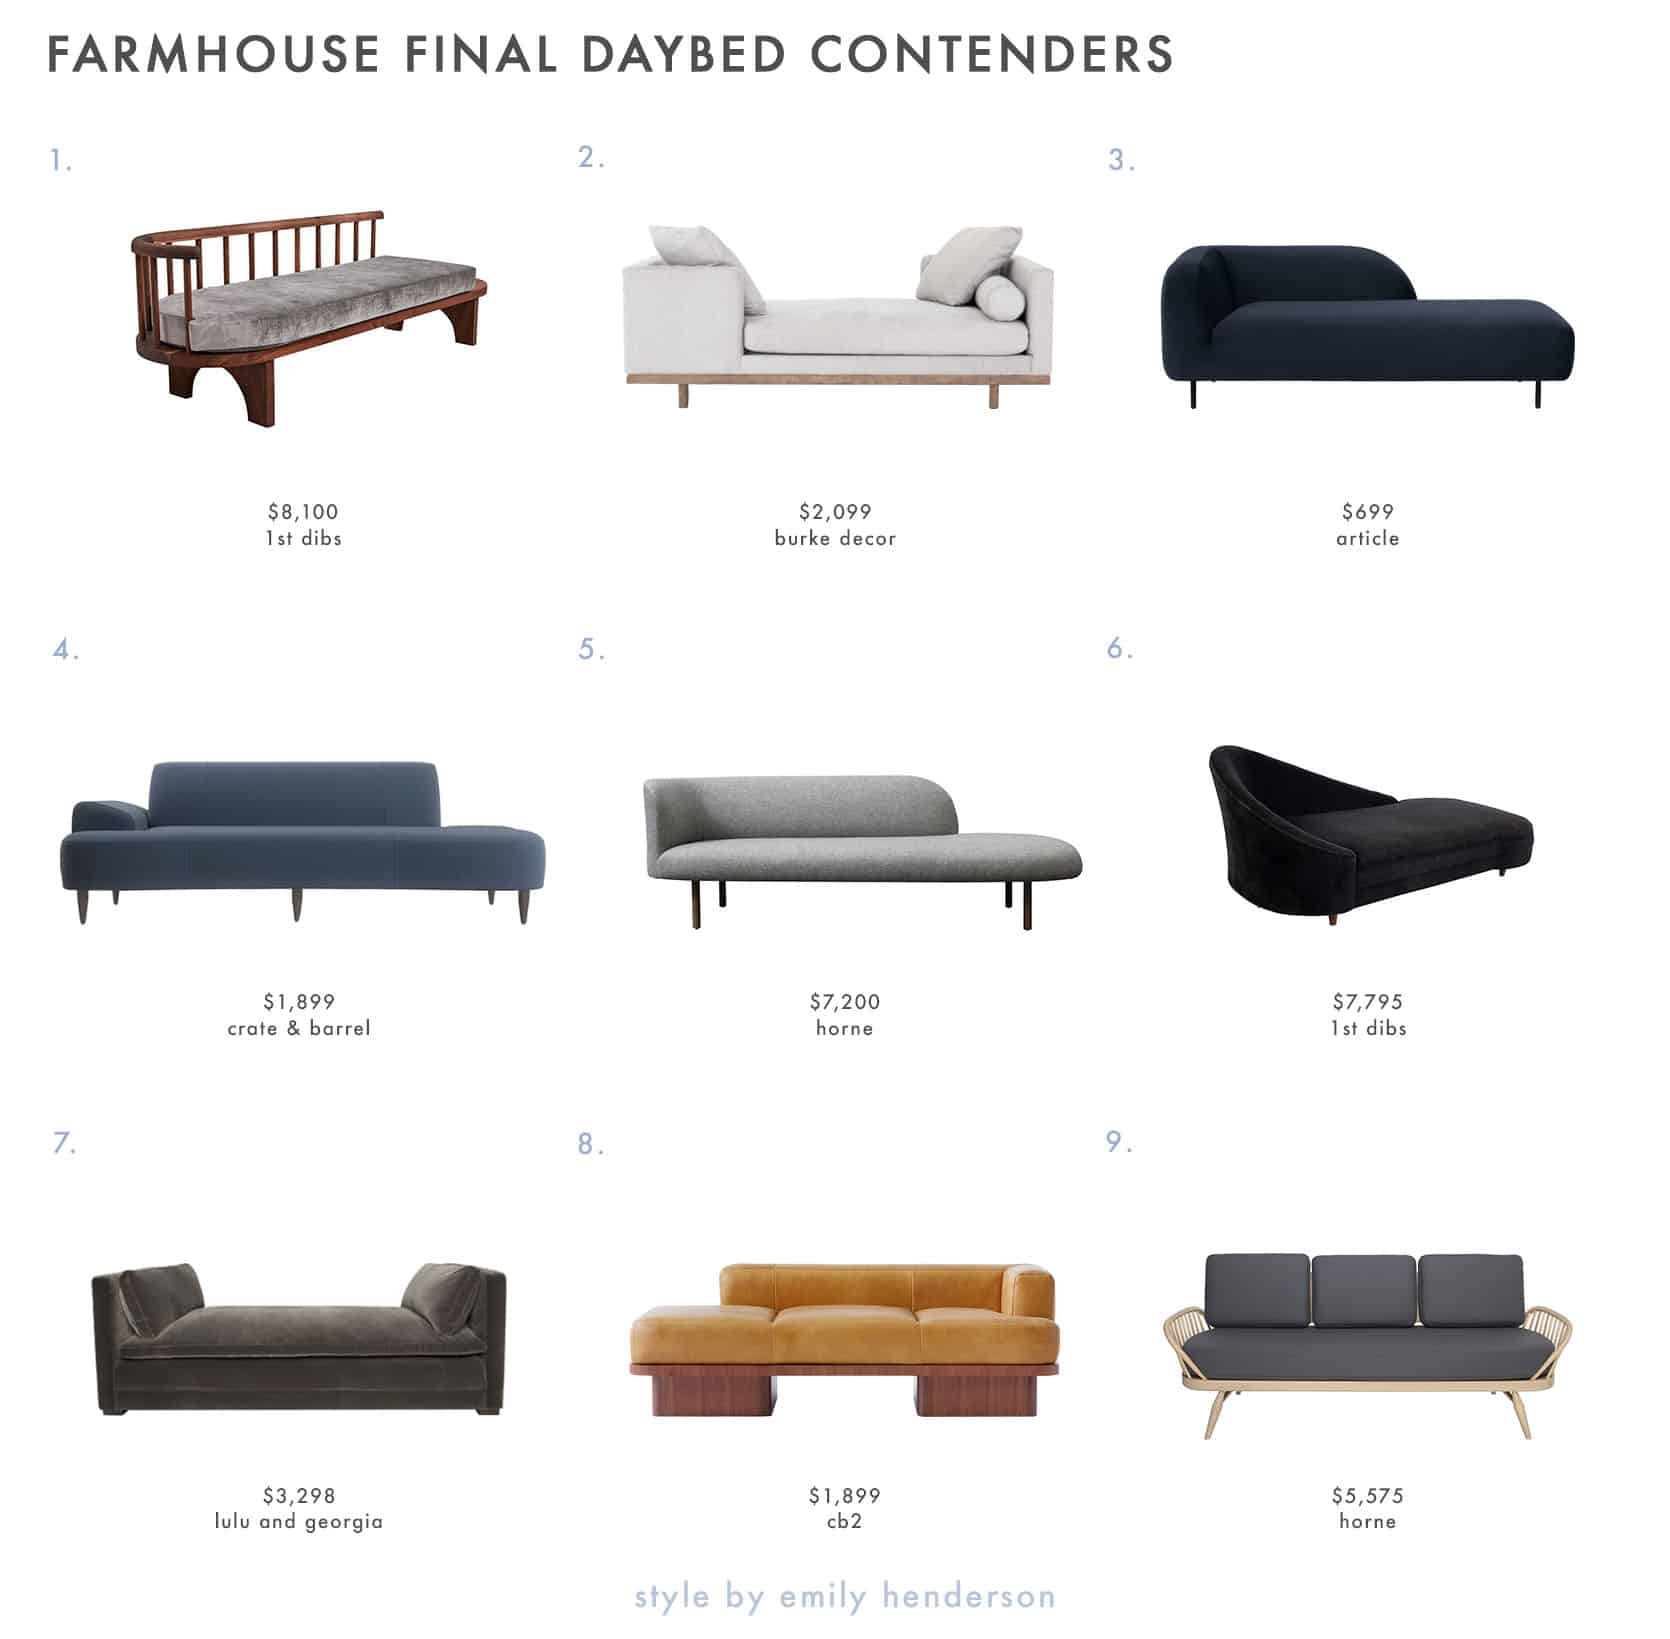 Emily Henderson Farmhouse Shopping List Daybeds The Final Contenders